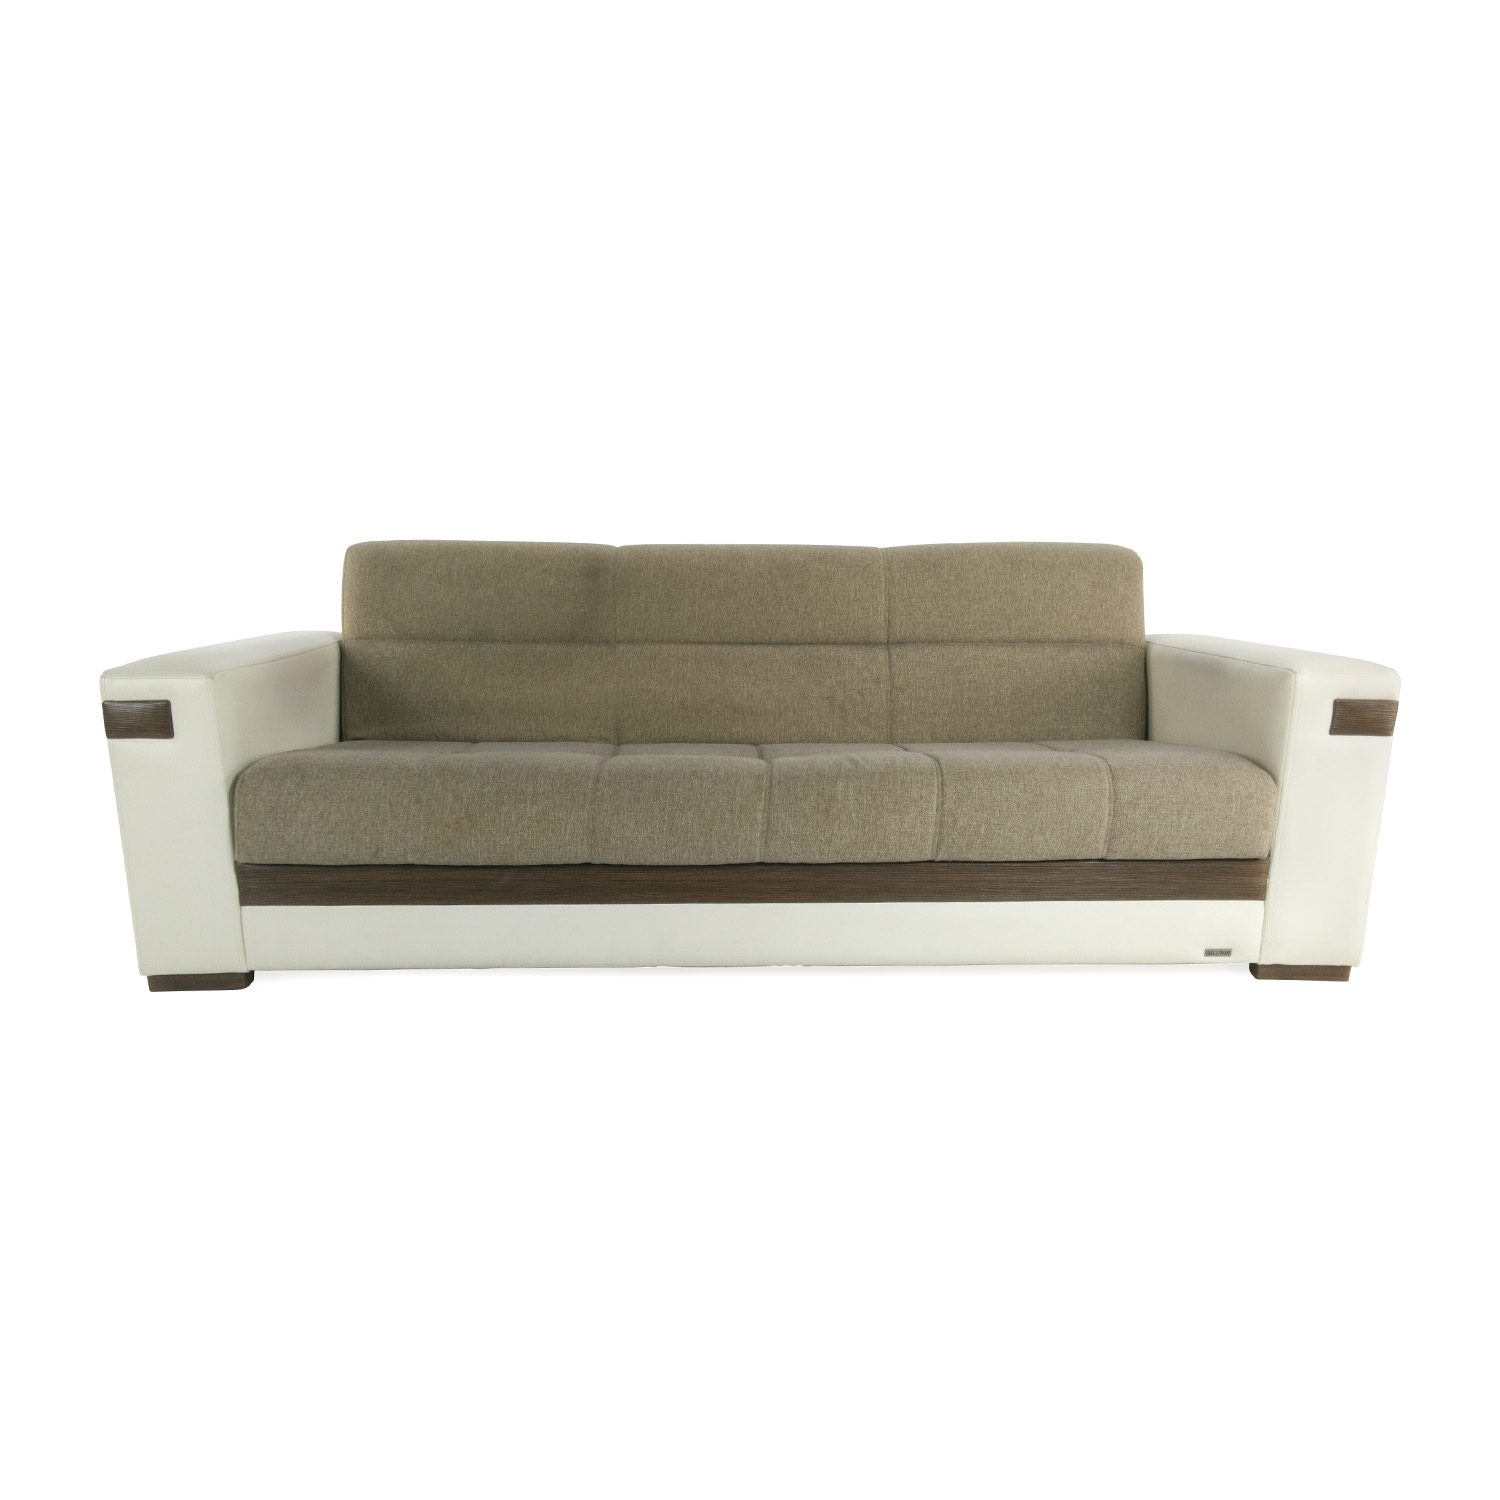 75% OFF - Bellona Bellona Contemporary Sofa / Sofas